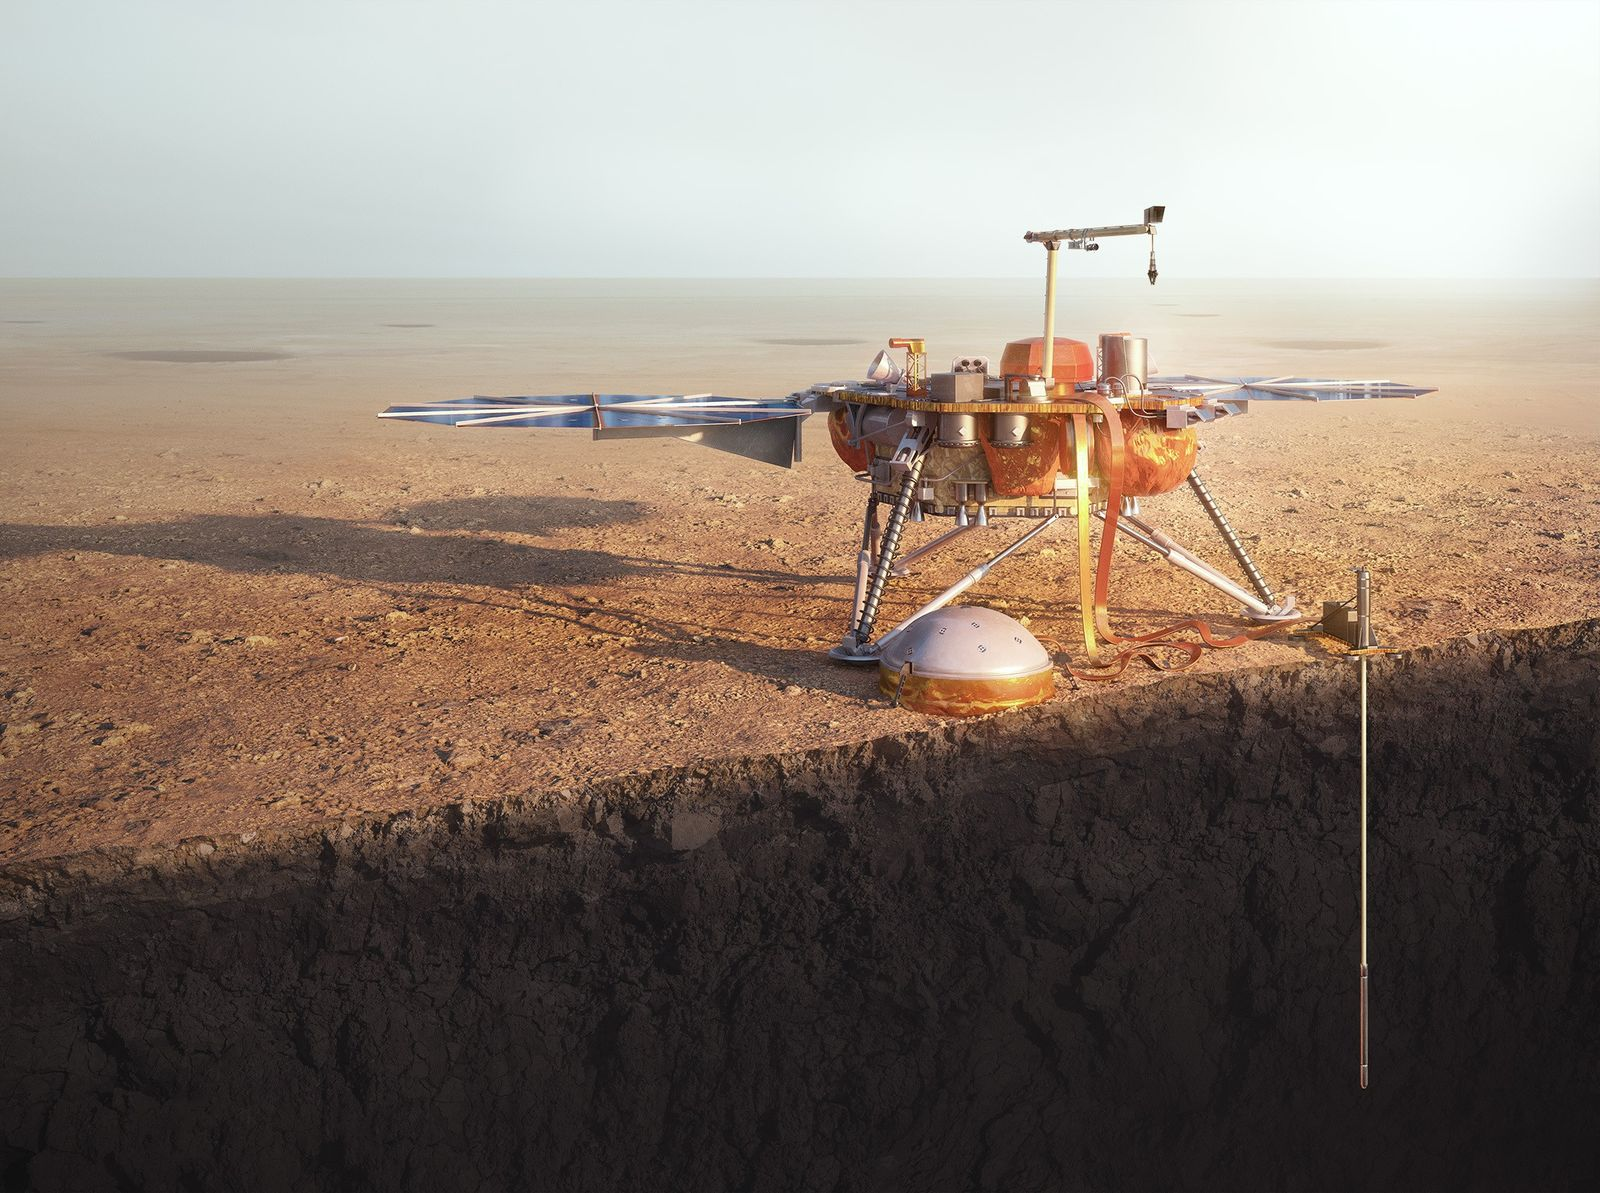 New Mars lander touches down safely. What happens now?